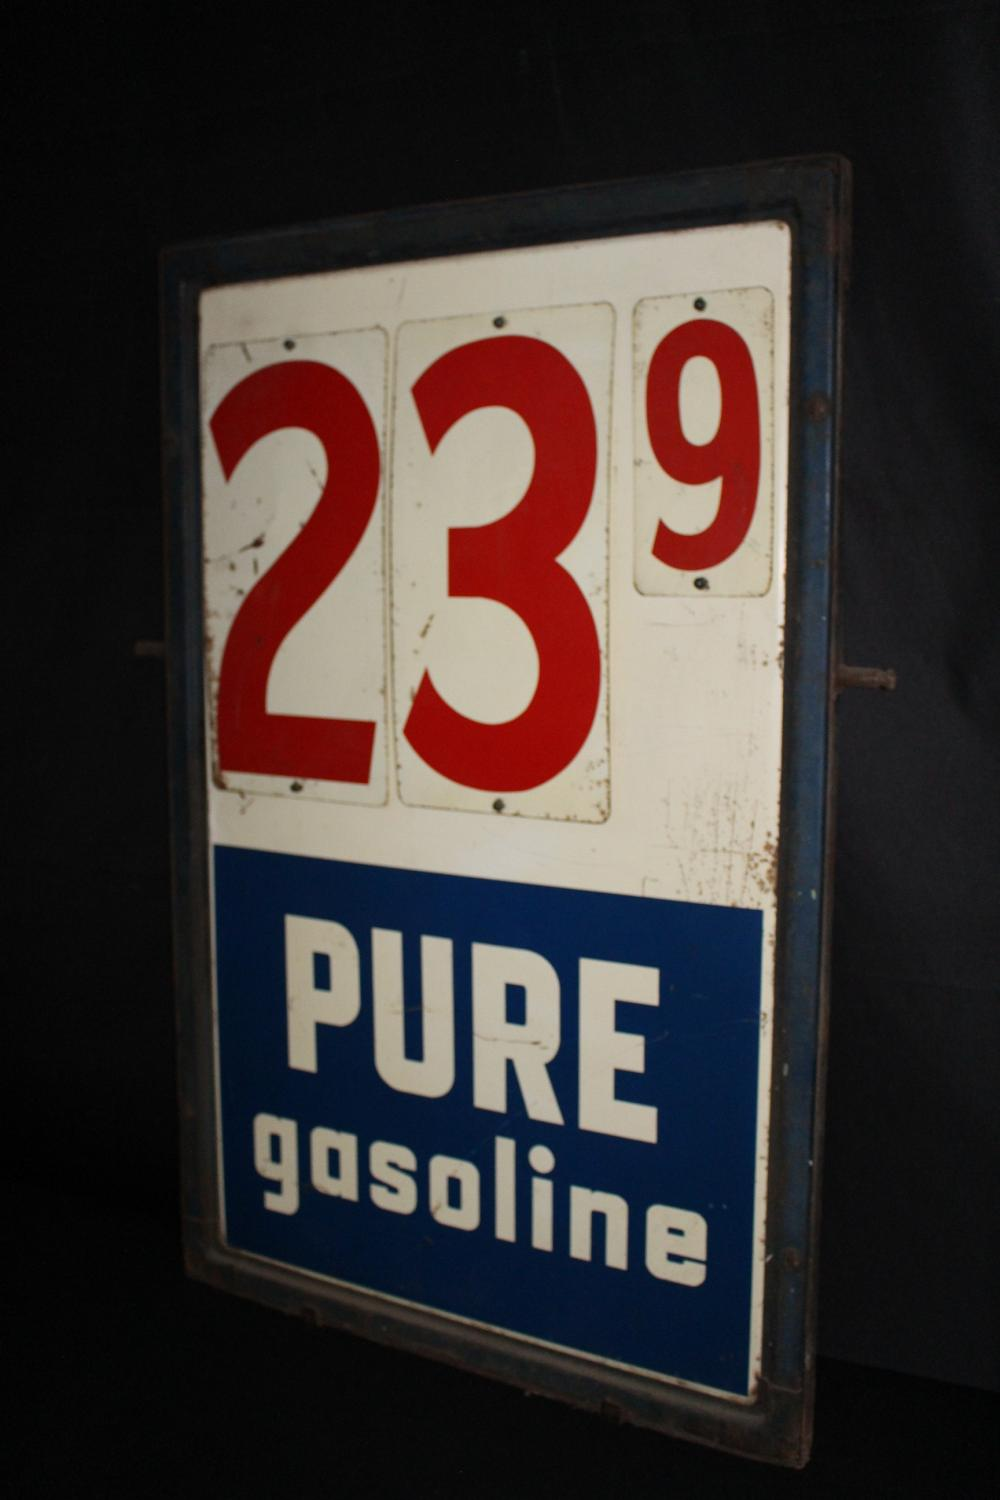 PURE GASOLINE GAS STATION PRICER SIGN